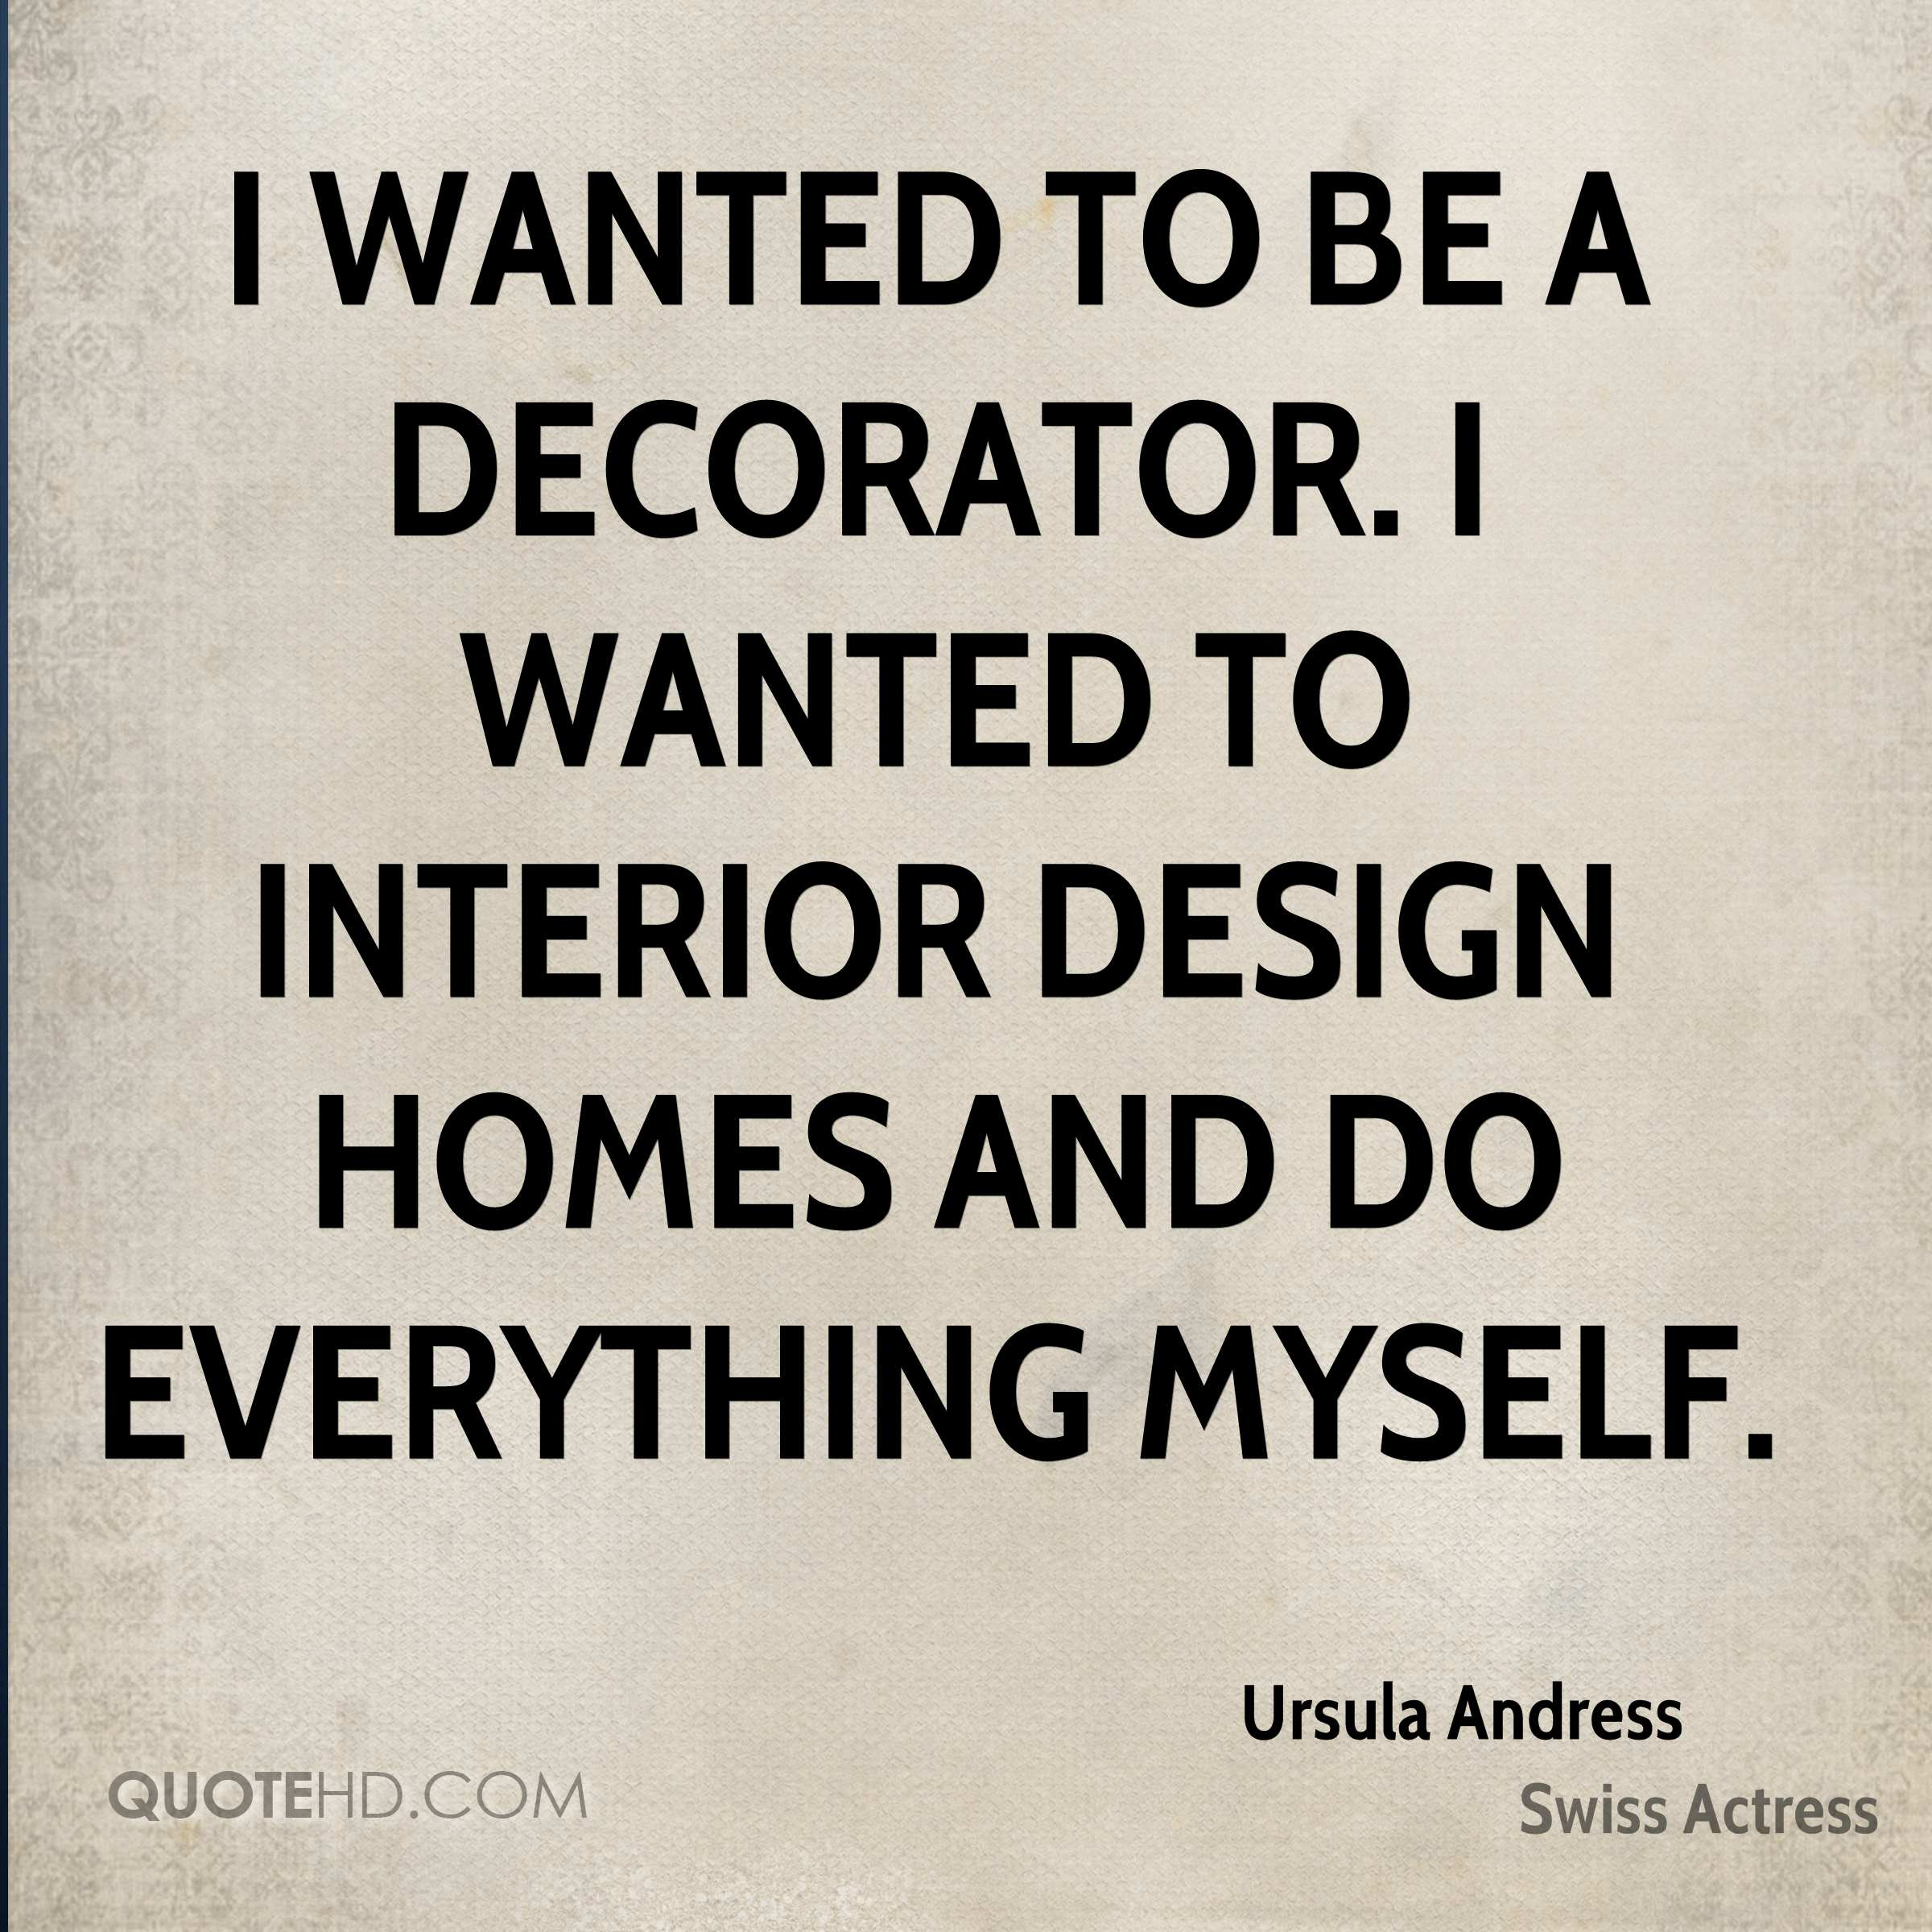 Ursula Andress Design Quotes Quotehd